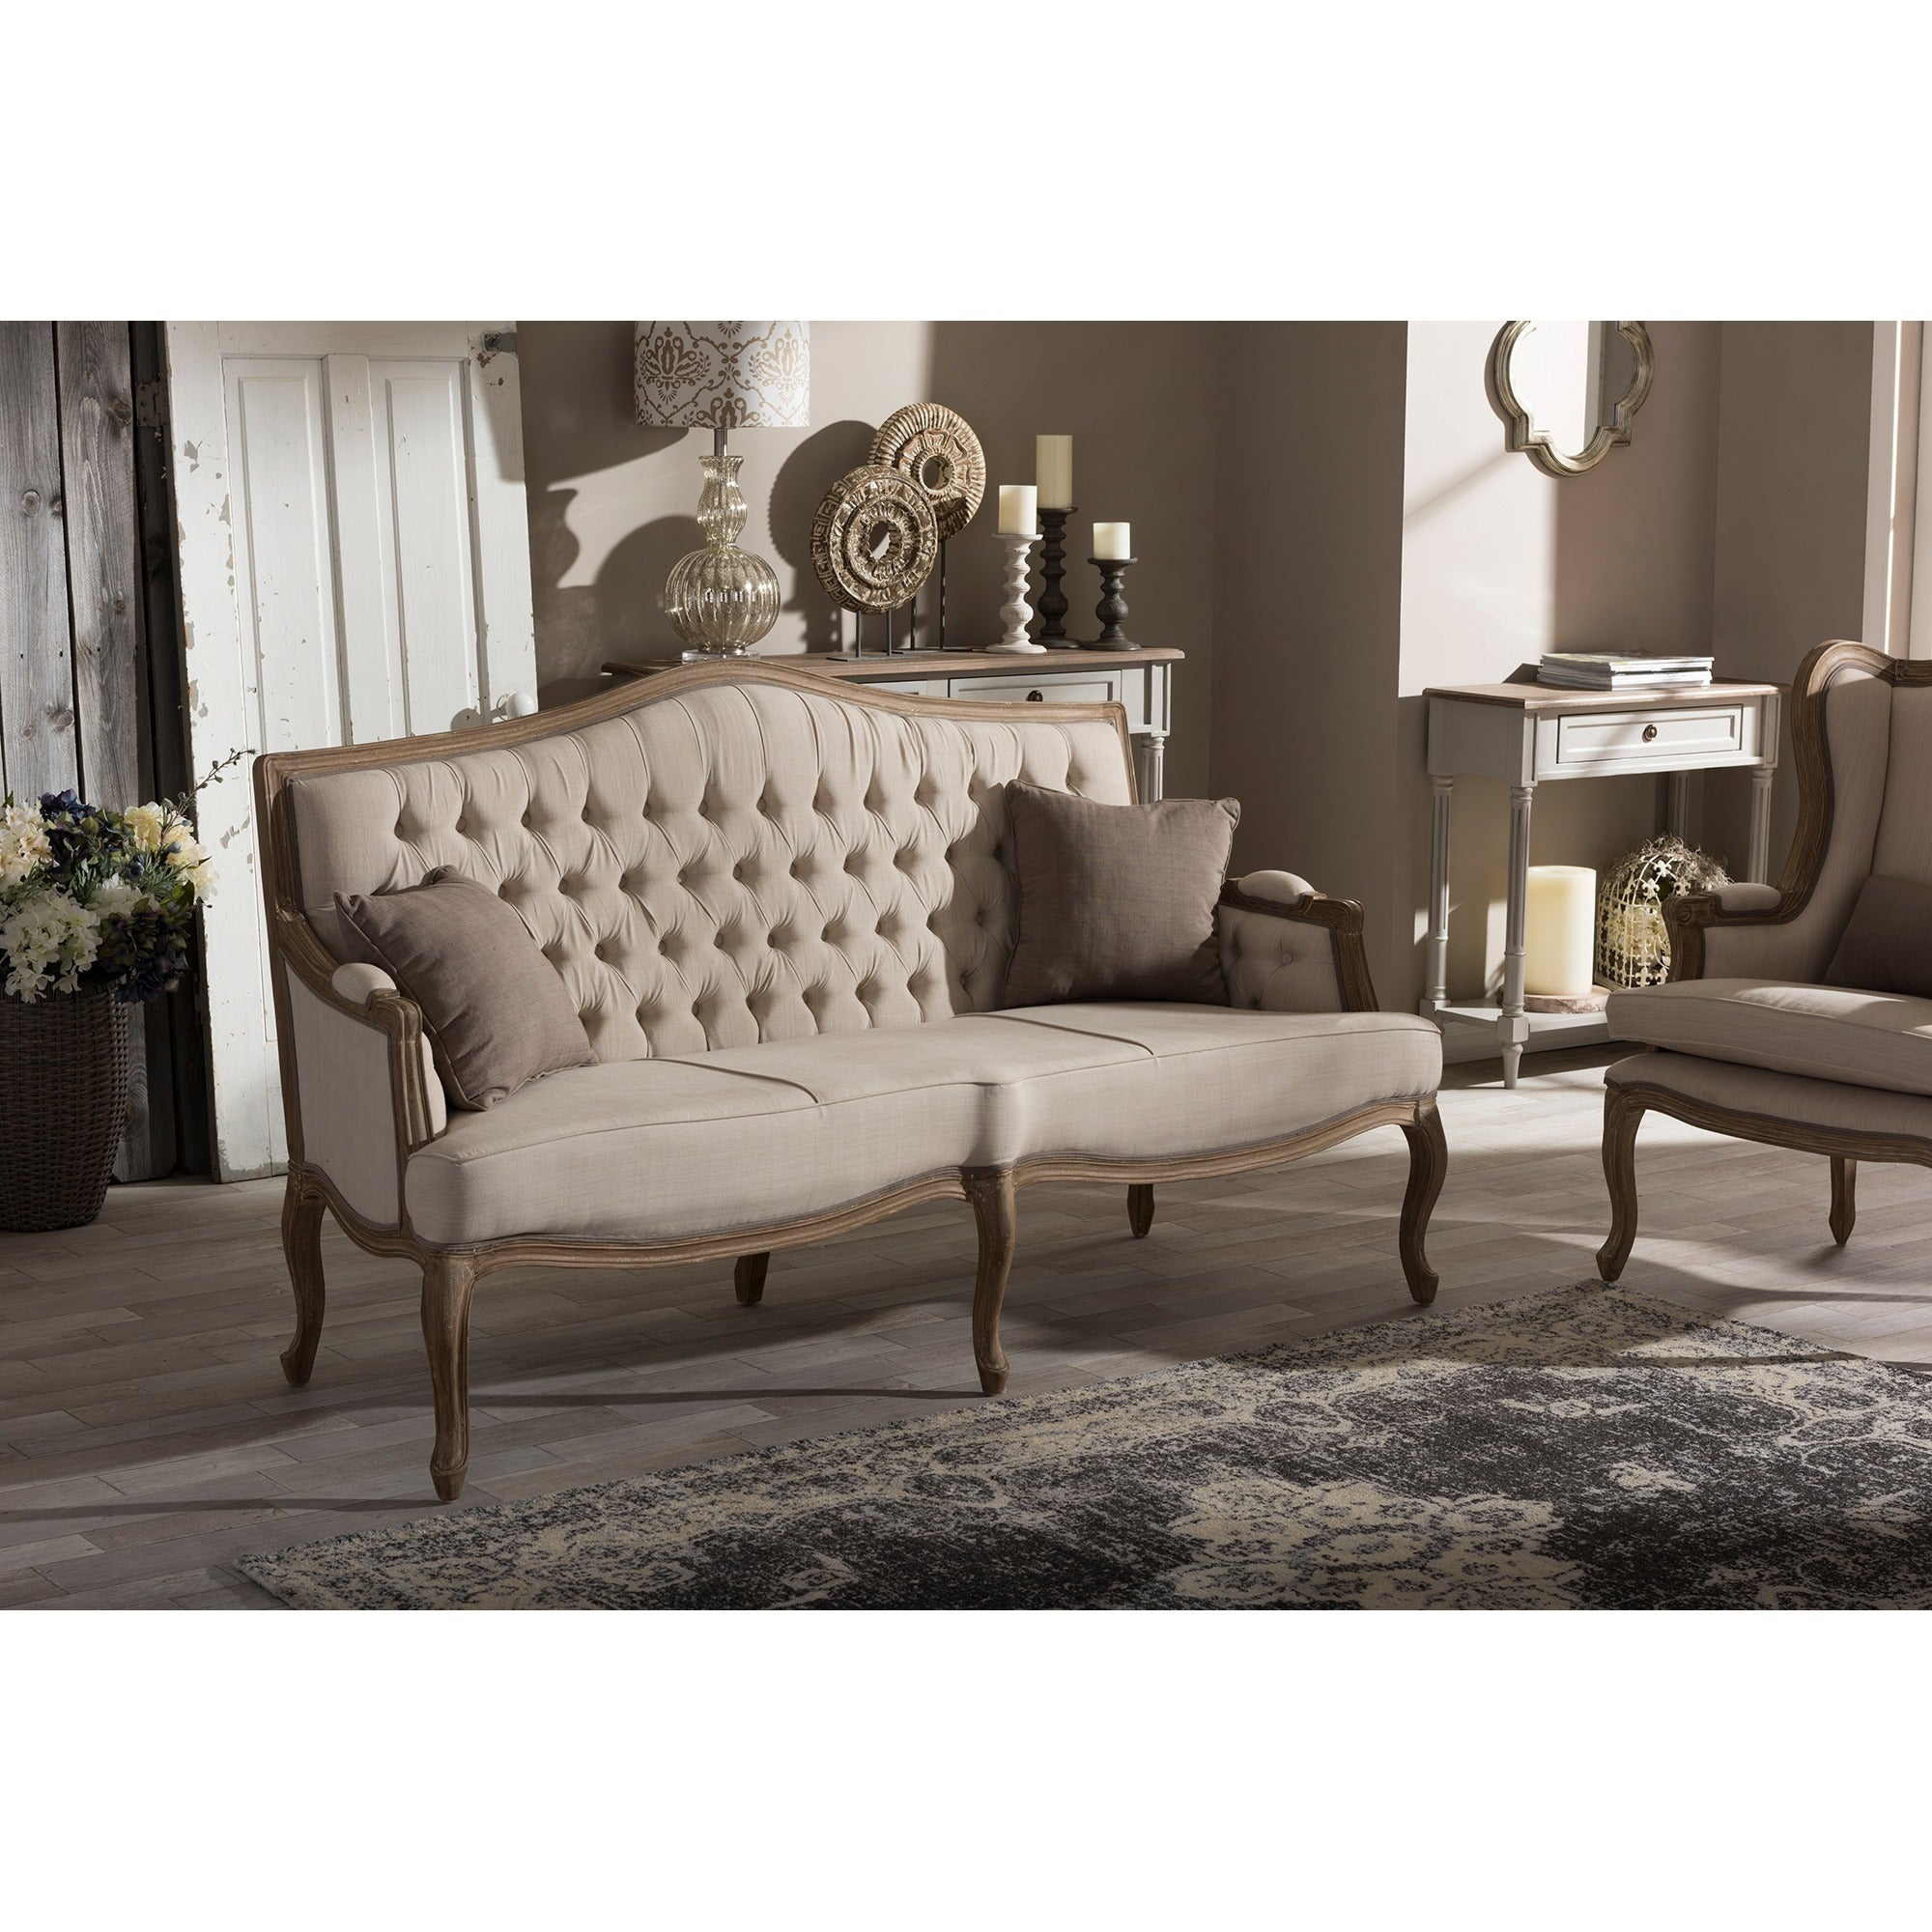 french contemporary italian sets luxury room furniture set livings modern provincial european living